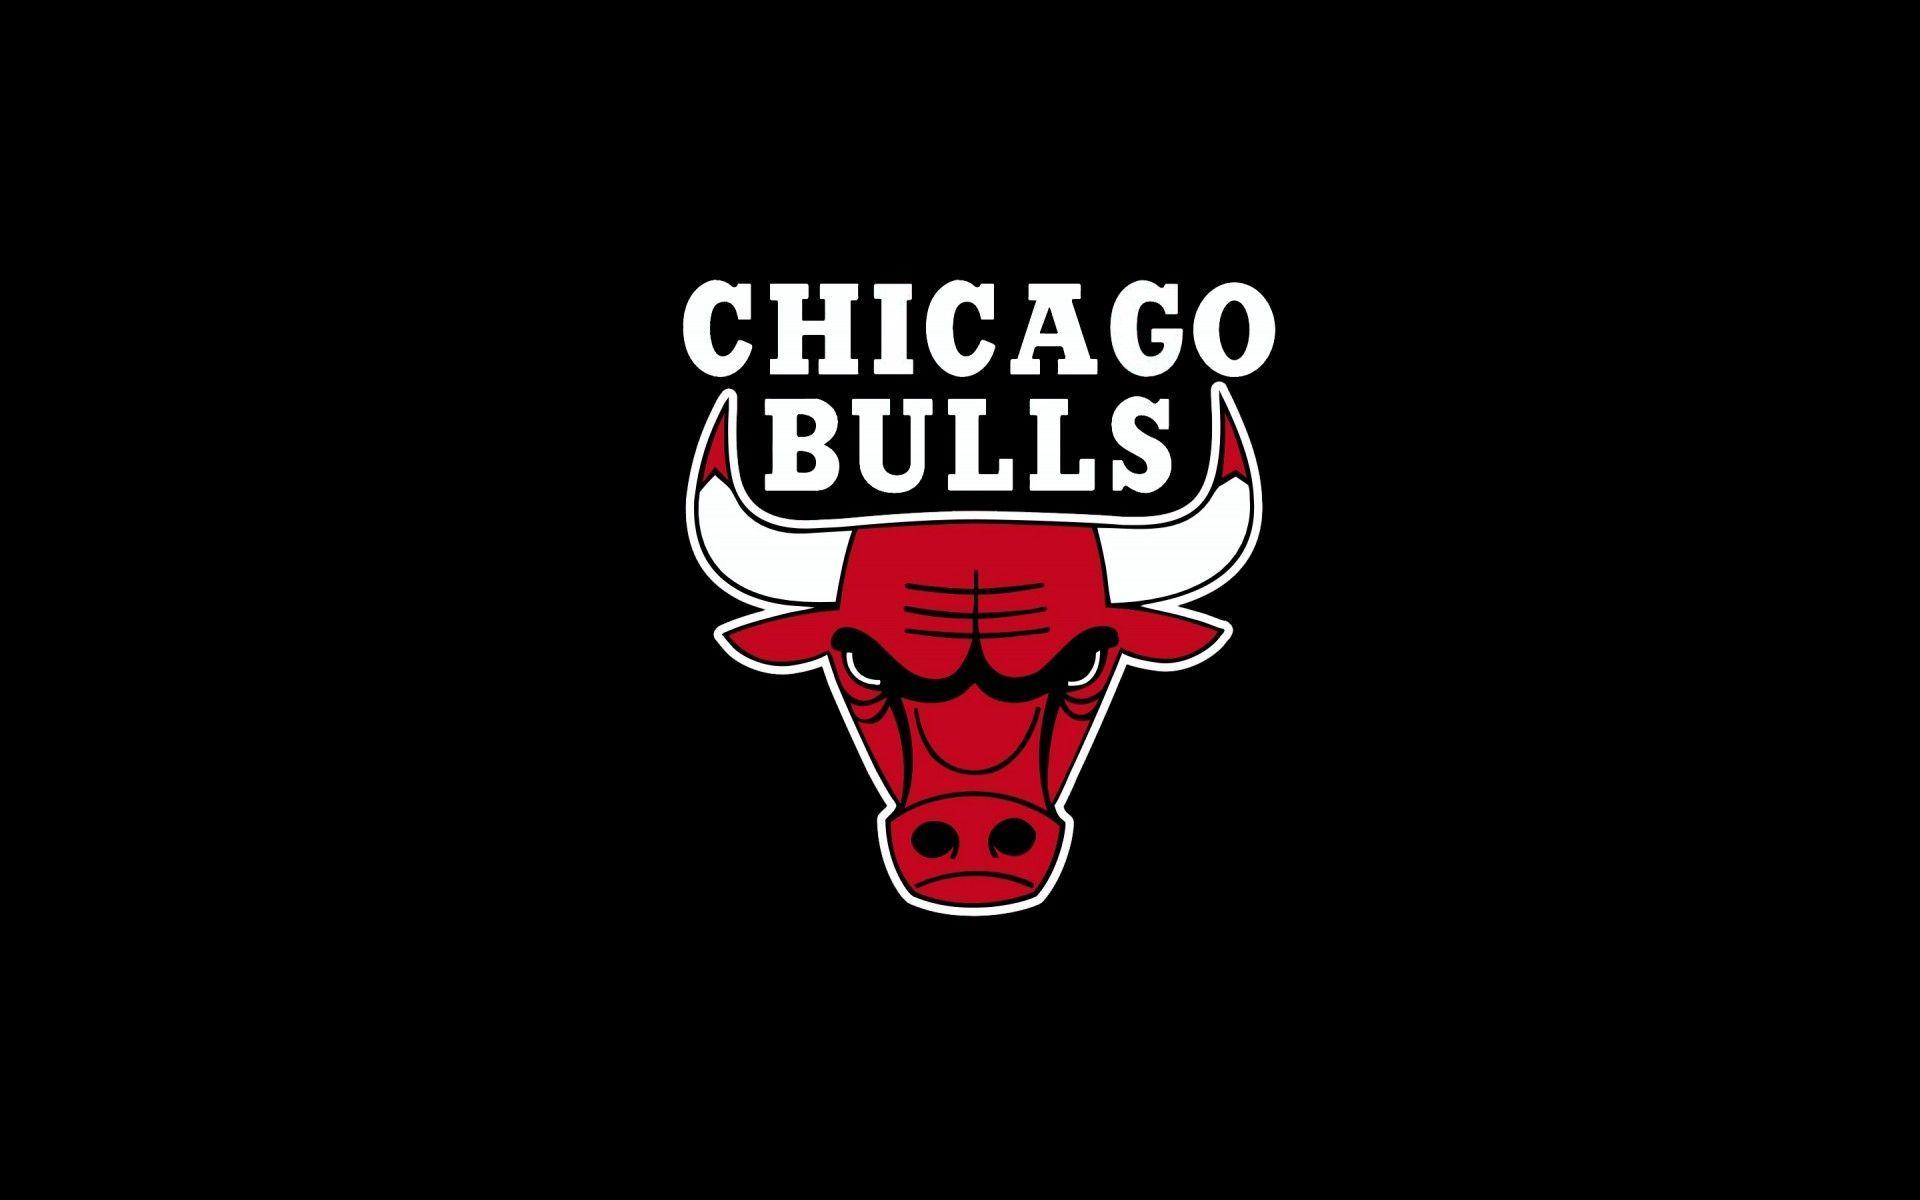 Chicago Bulls Wallpapers HD